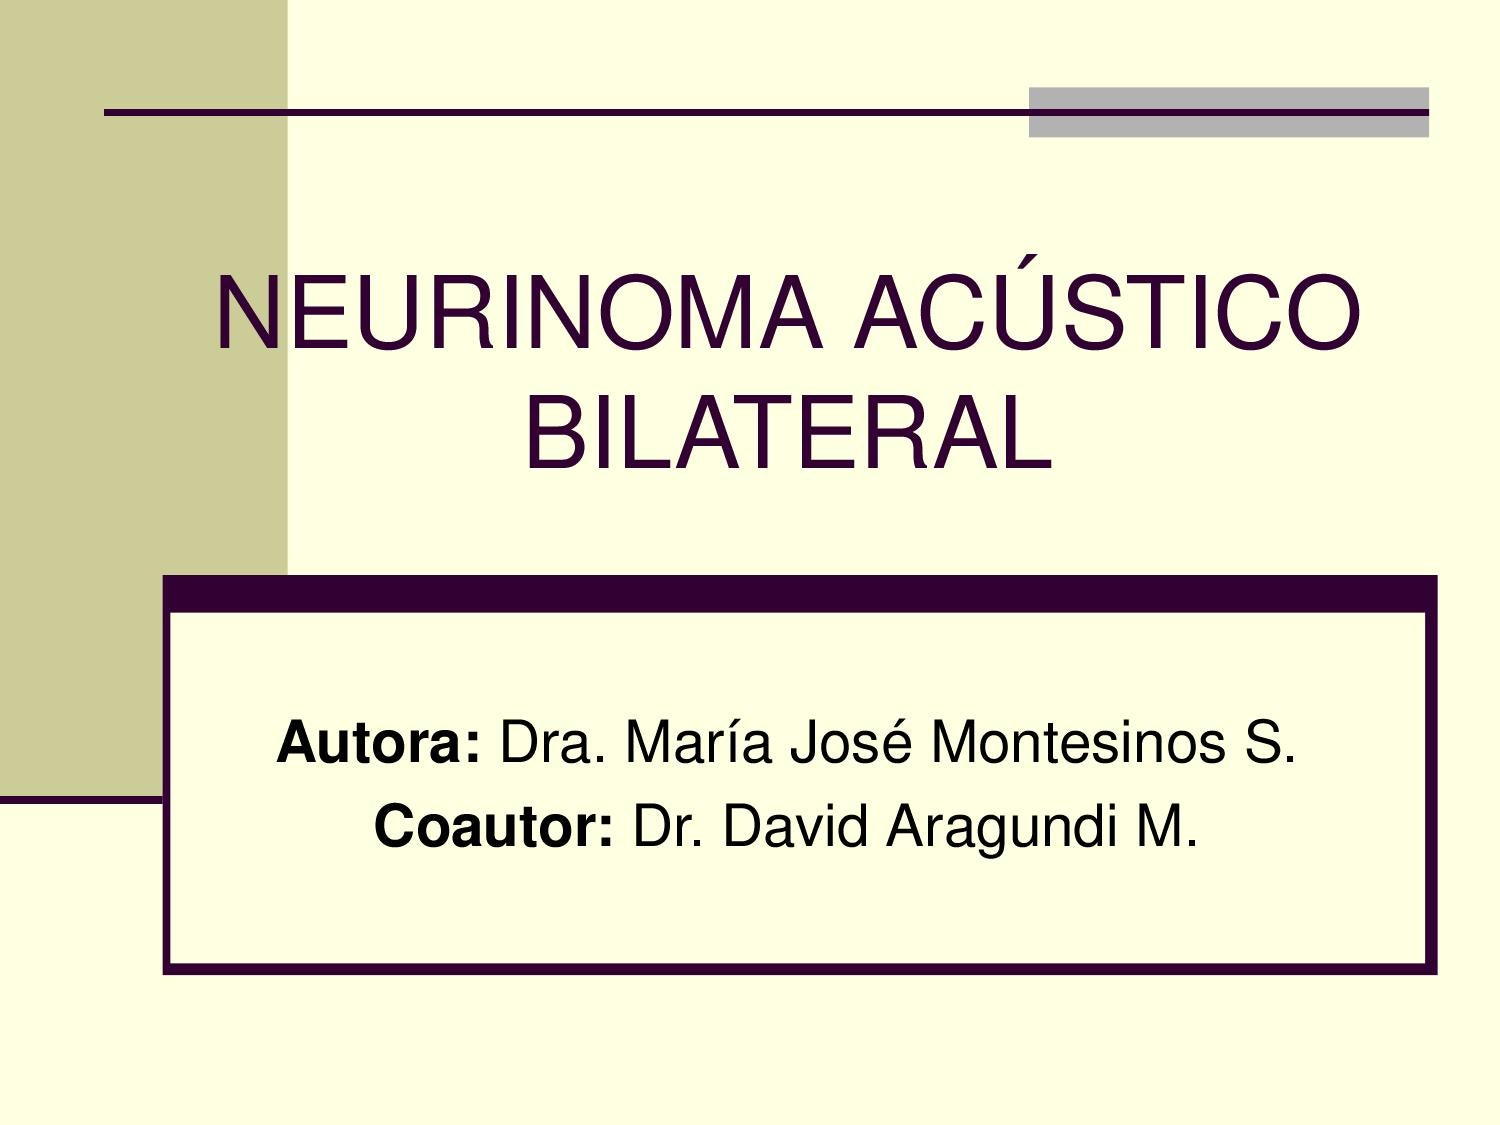 Neurinoma Acustico Bilateral by ANAMER GUAYAS - issuu